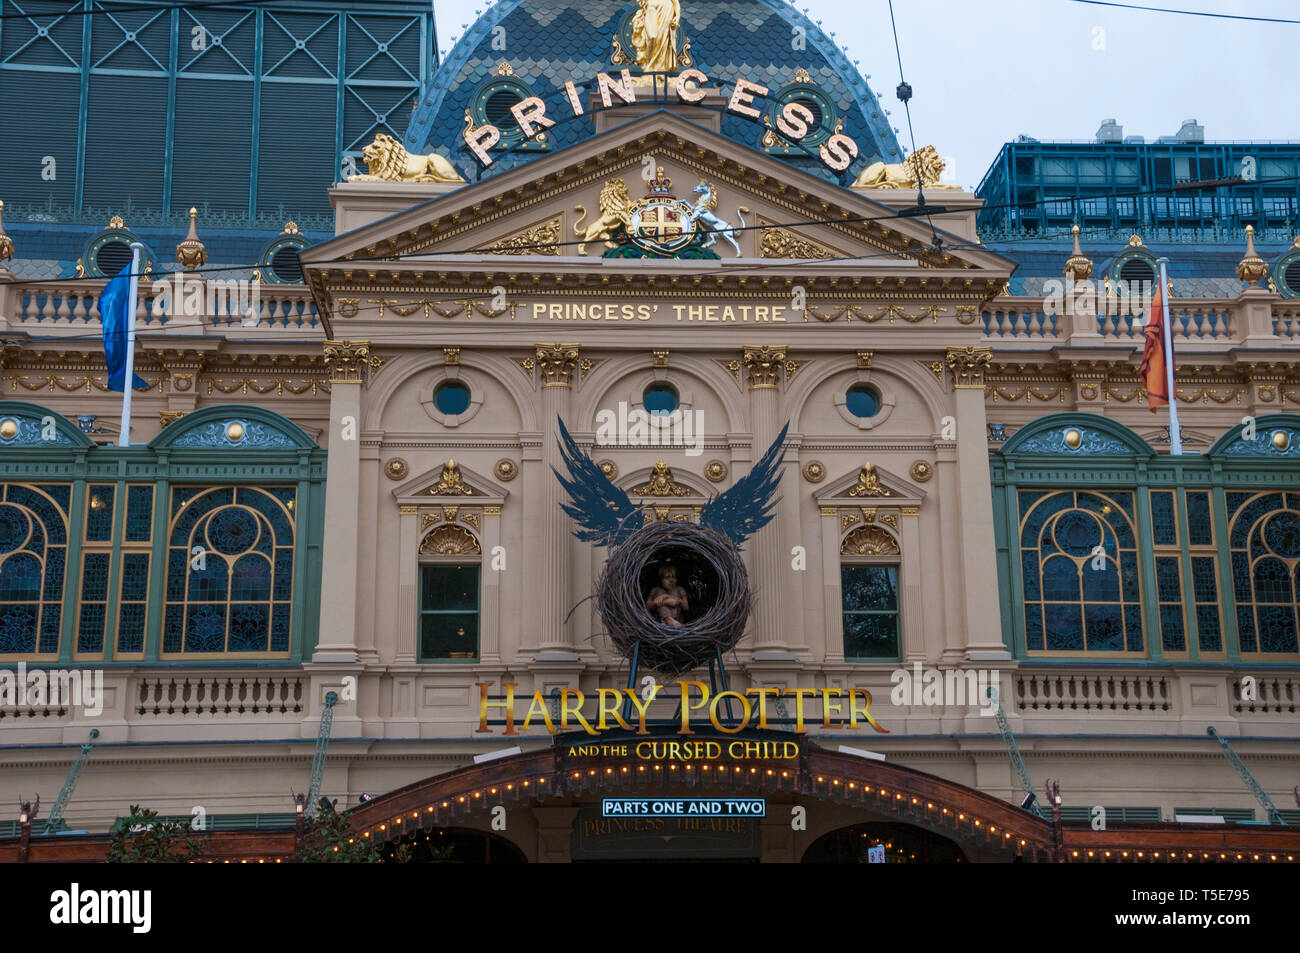 The historic Princess' Theatre in Spring Street, Melbourne, showcasing the Australian premiere of 'Harry Potter and the Cursed Child' Stock Photo